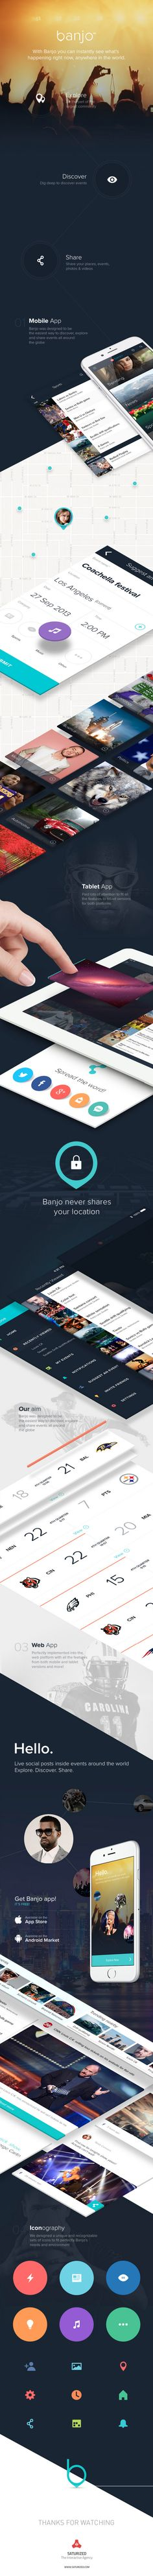 Banjo - iPhone, iPad & Web App on Behance